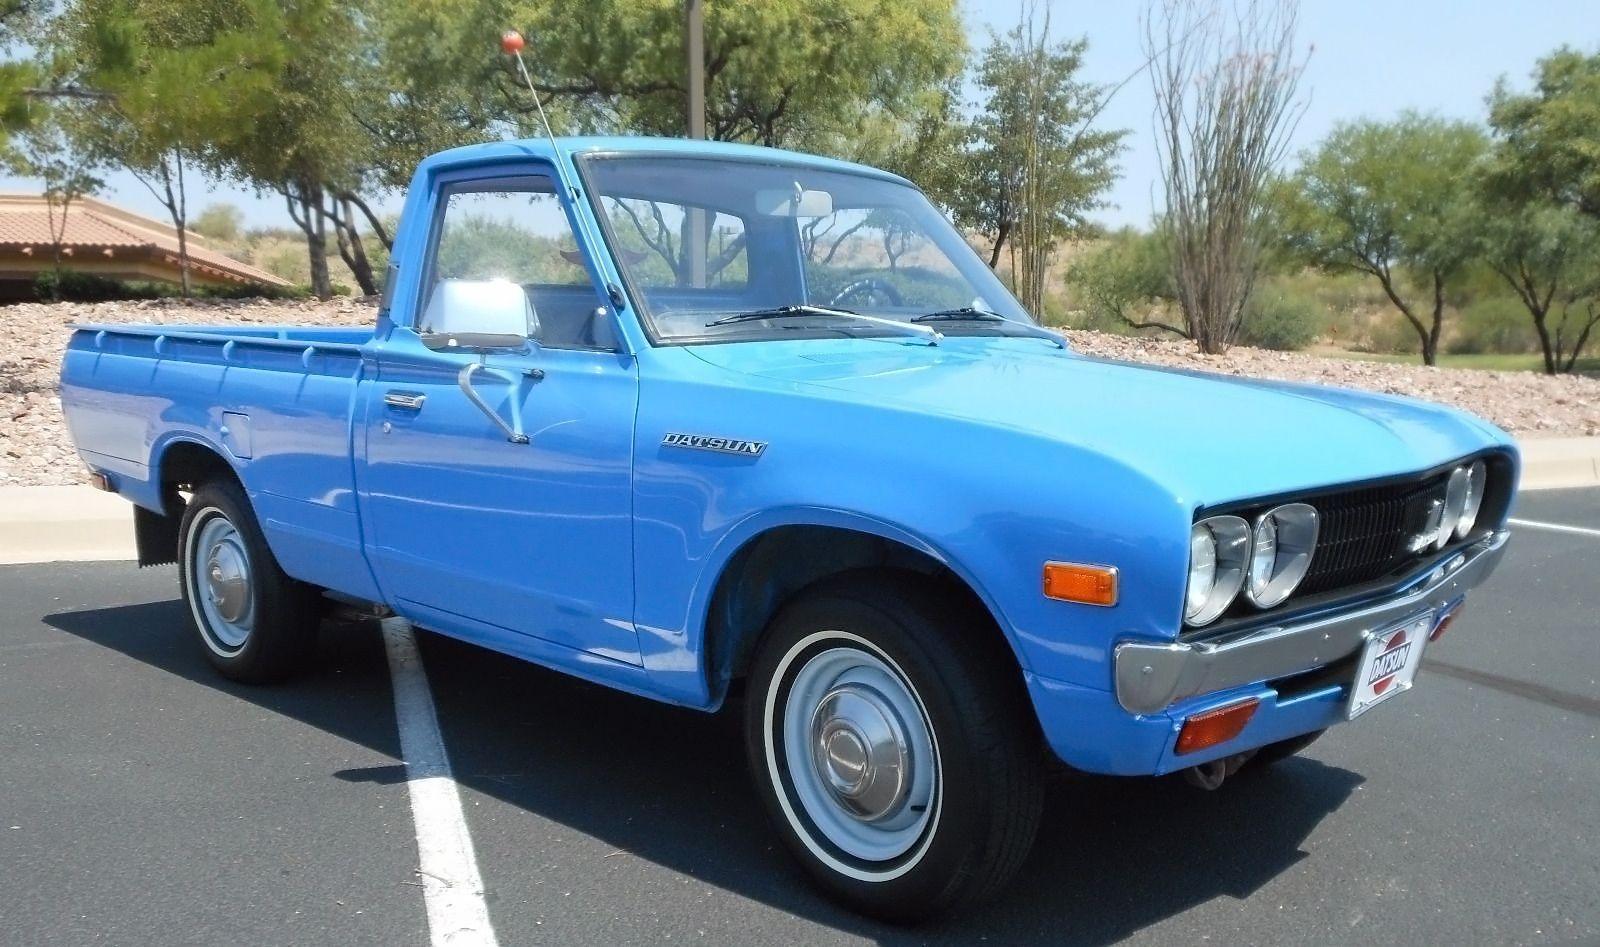 Original Arizona Truck 1974 Datsun 620 Pickup Datsun Datsun Pickup Small Trucks